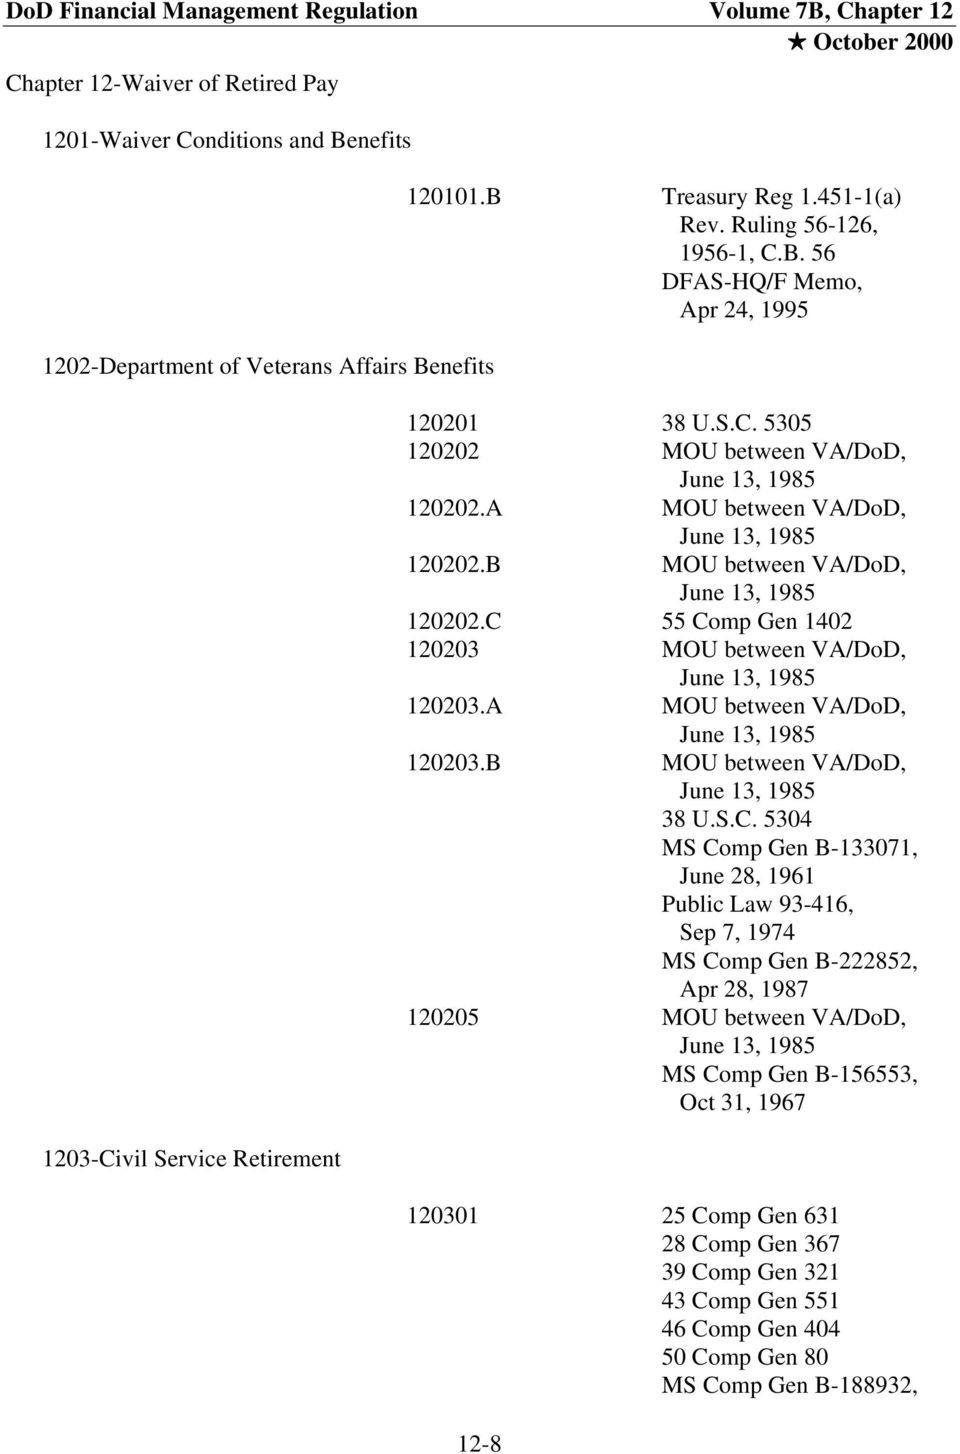 C 55 Comp Gen 1402 120203 MOU between VA/DoD, 120203.A MOU between VA/DoD, 120203.B MOU between VA/DoD, 38 U.S.C. 5304 MS Comp Gen B-133071, June 28, 1961 Public Law 93-416, Sep 7, 1974 MS